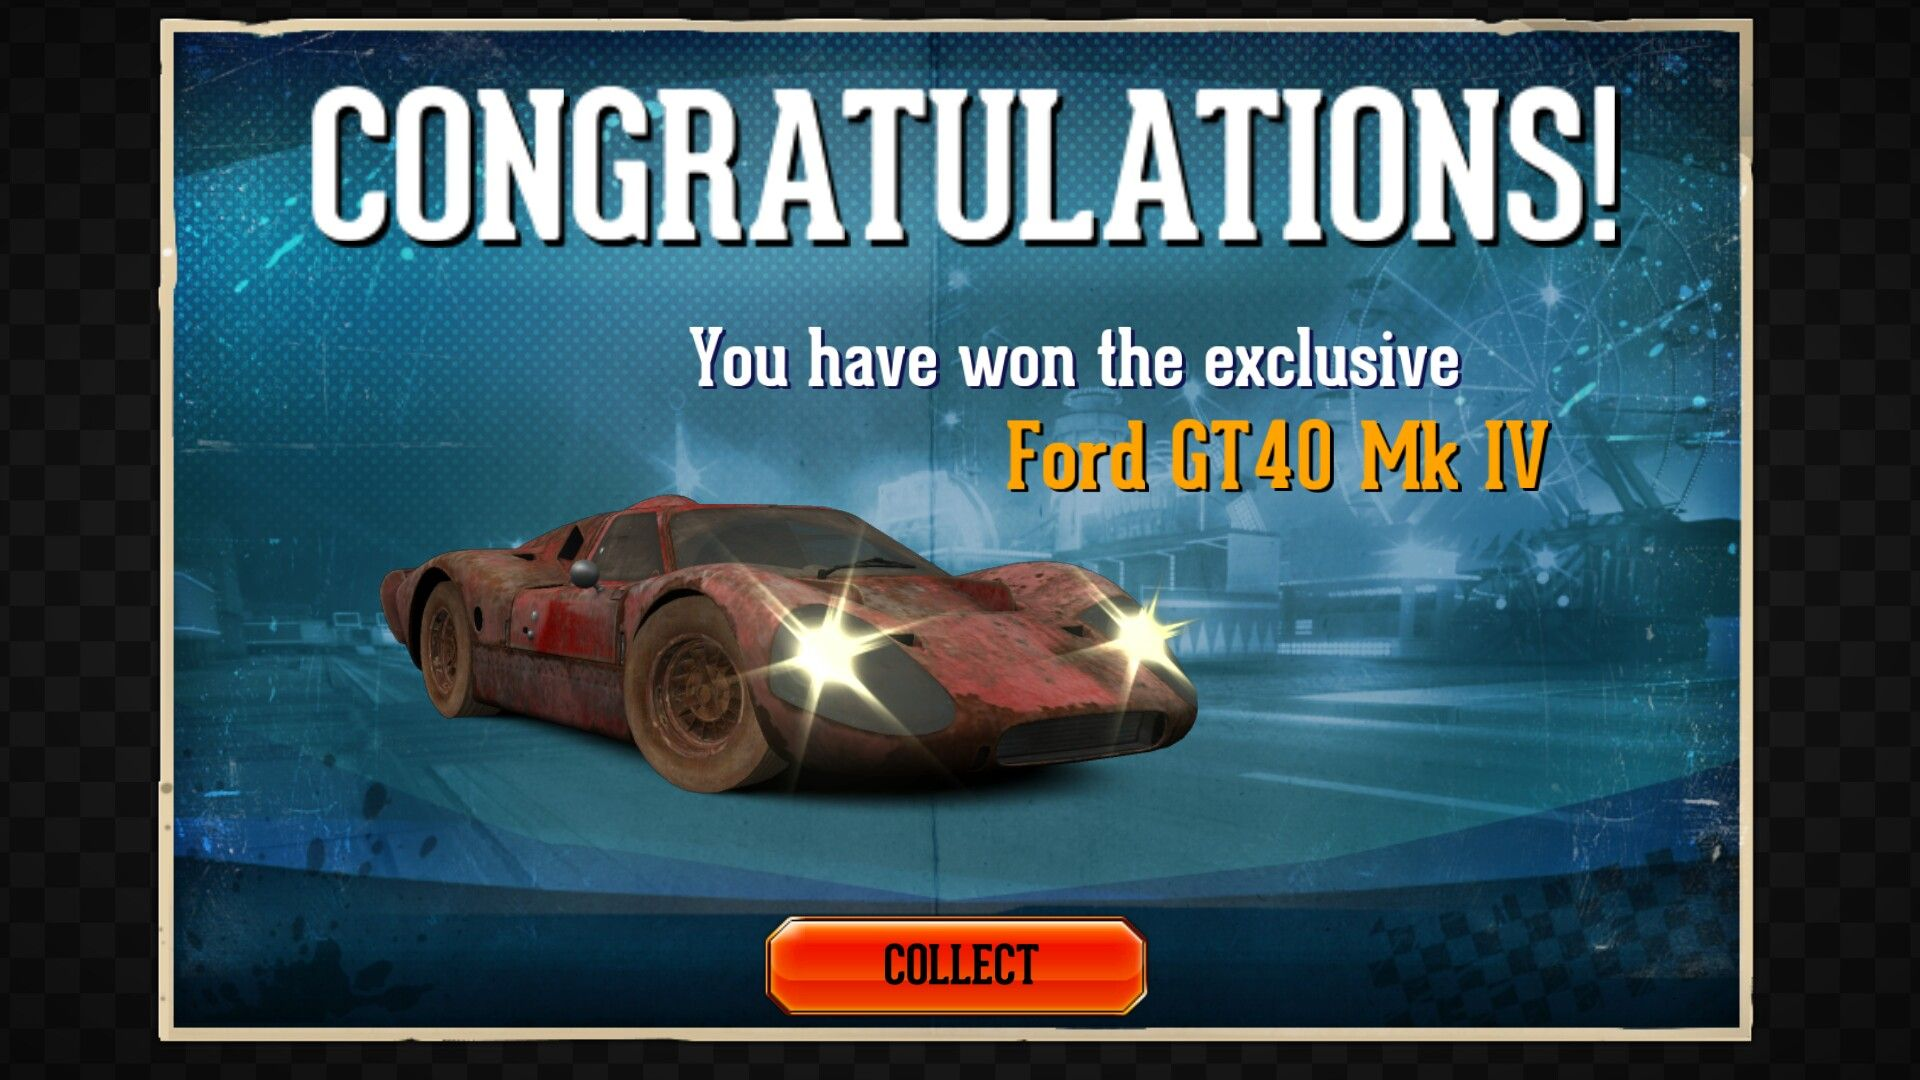 Here's a Ford GT40 Mk IV season prize car from the golden age of CSR